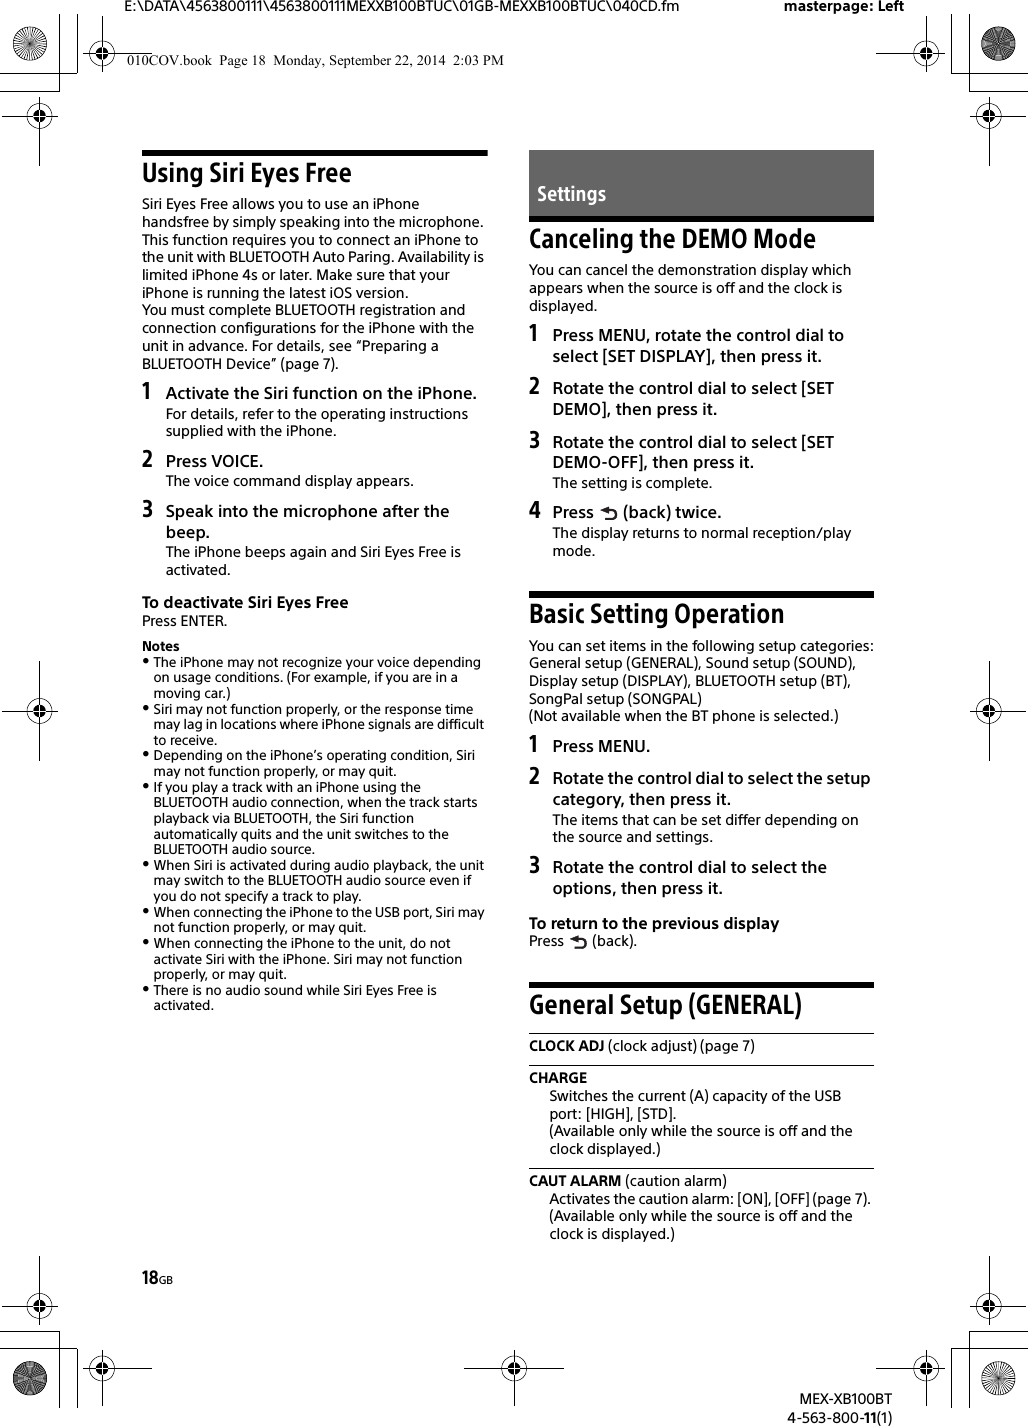 sony mex xb100bt user manual